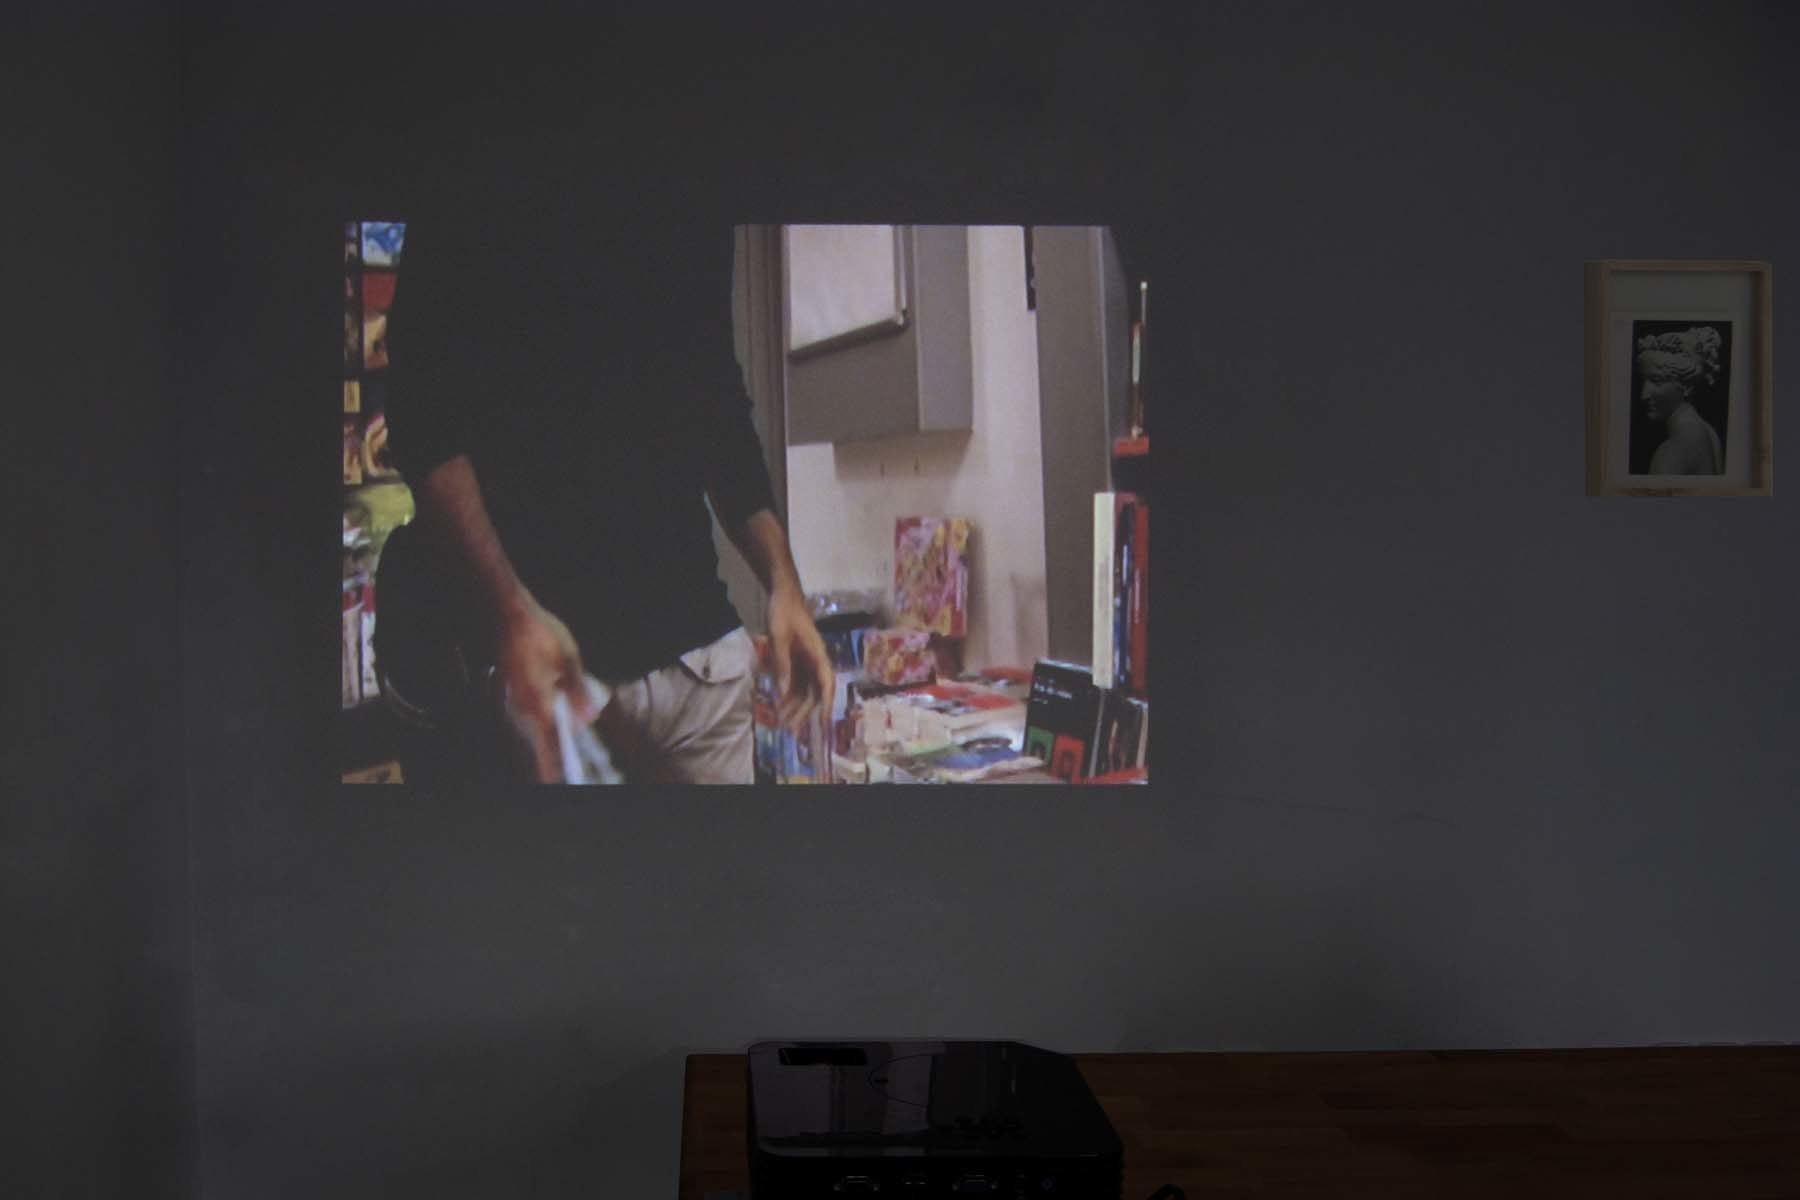 C. Chironi, DK, 2009, video, stolen book page, frame